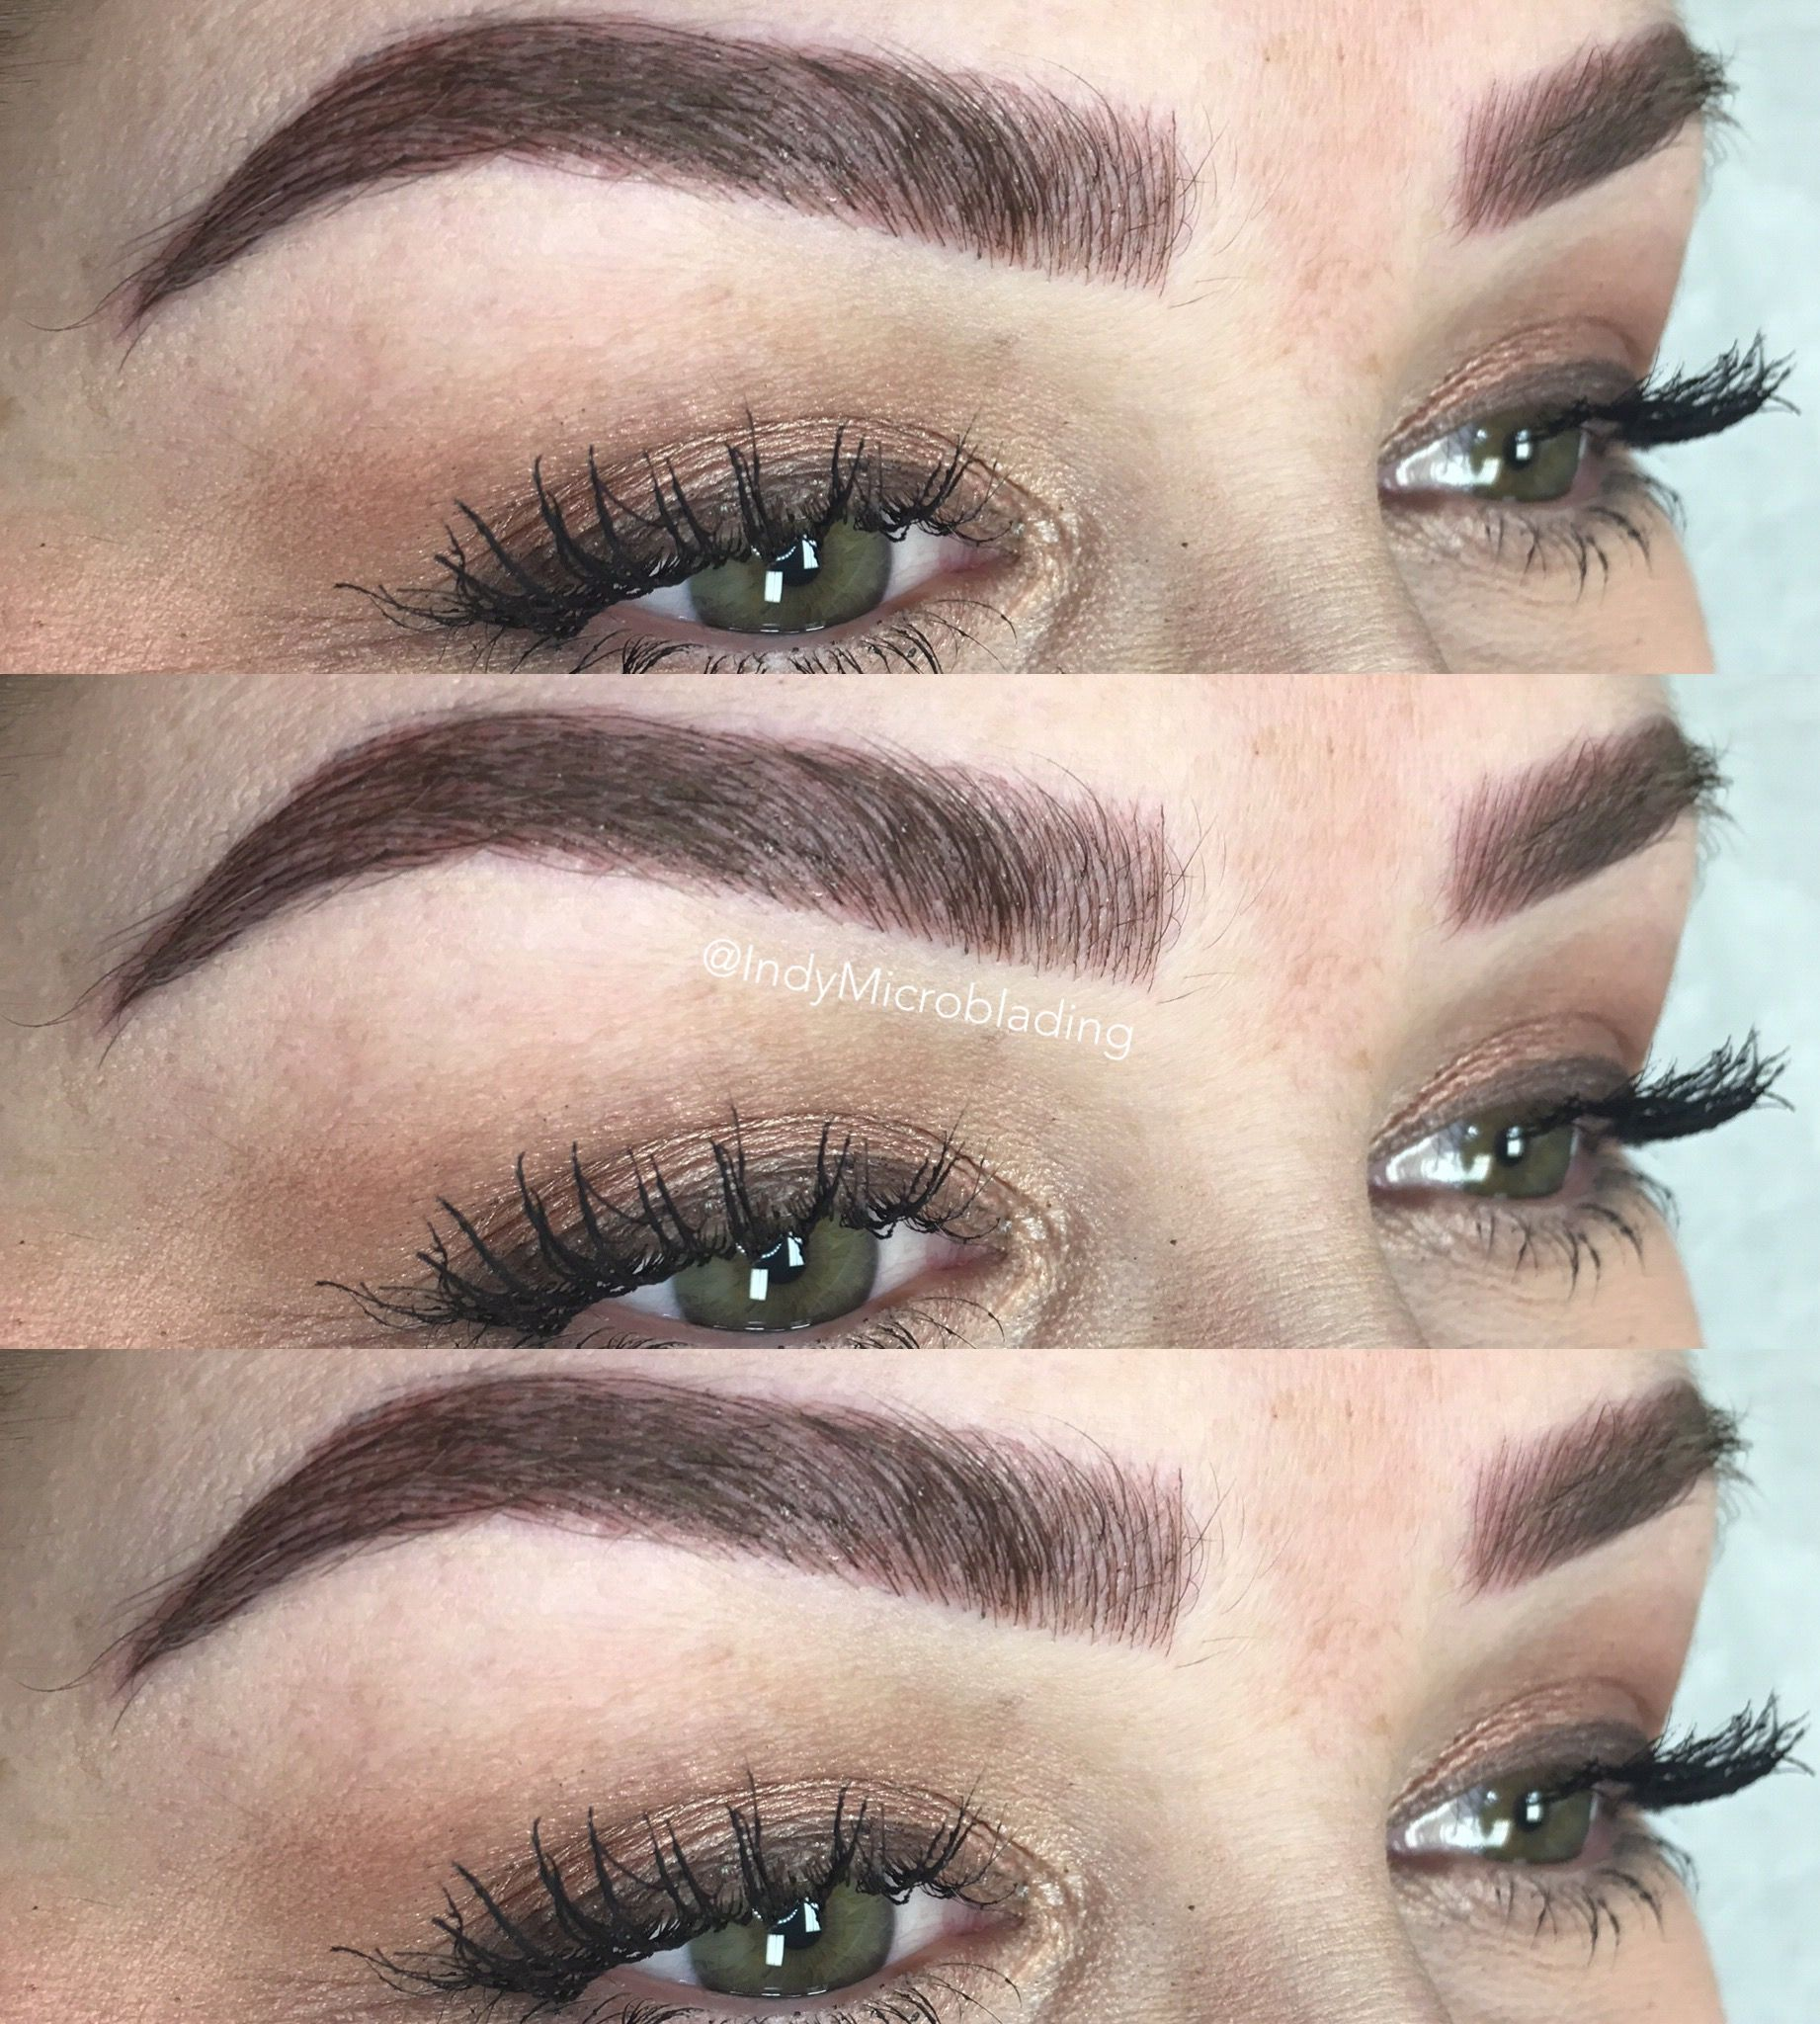 Indy Microblading, Eyebrows on fleek, Microblading, Midwest ...